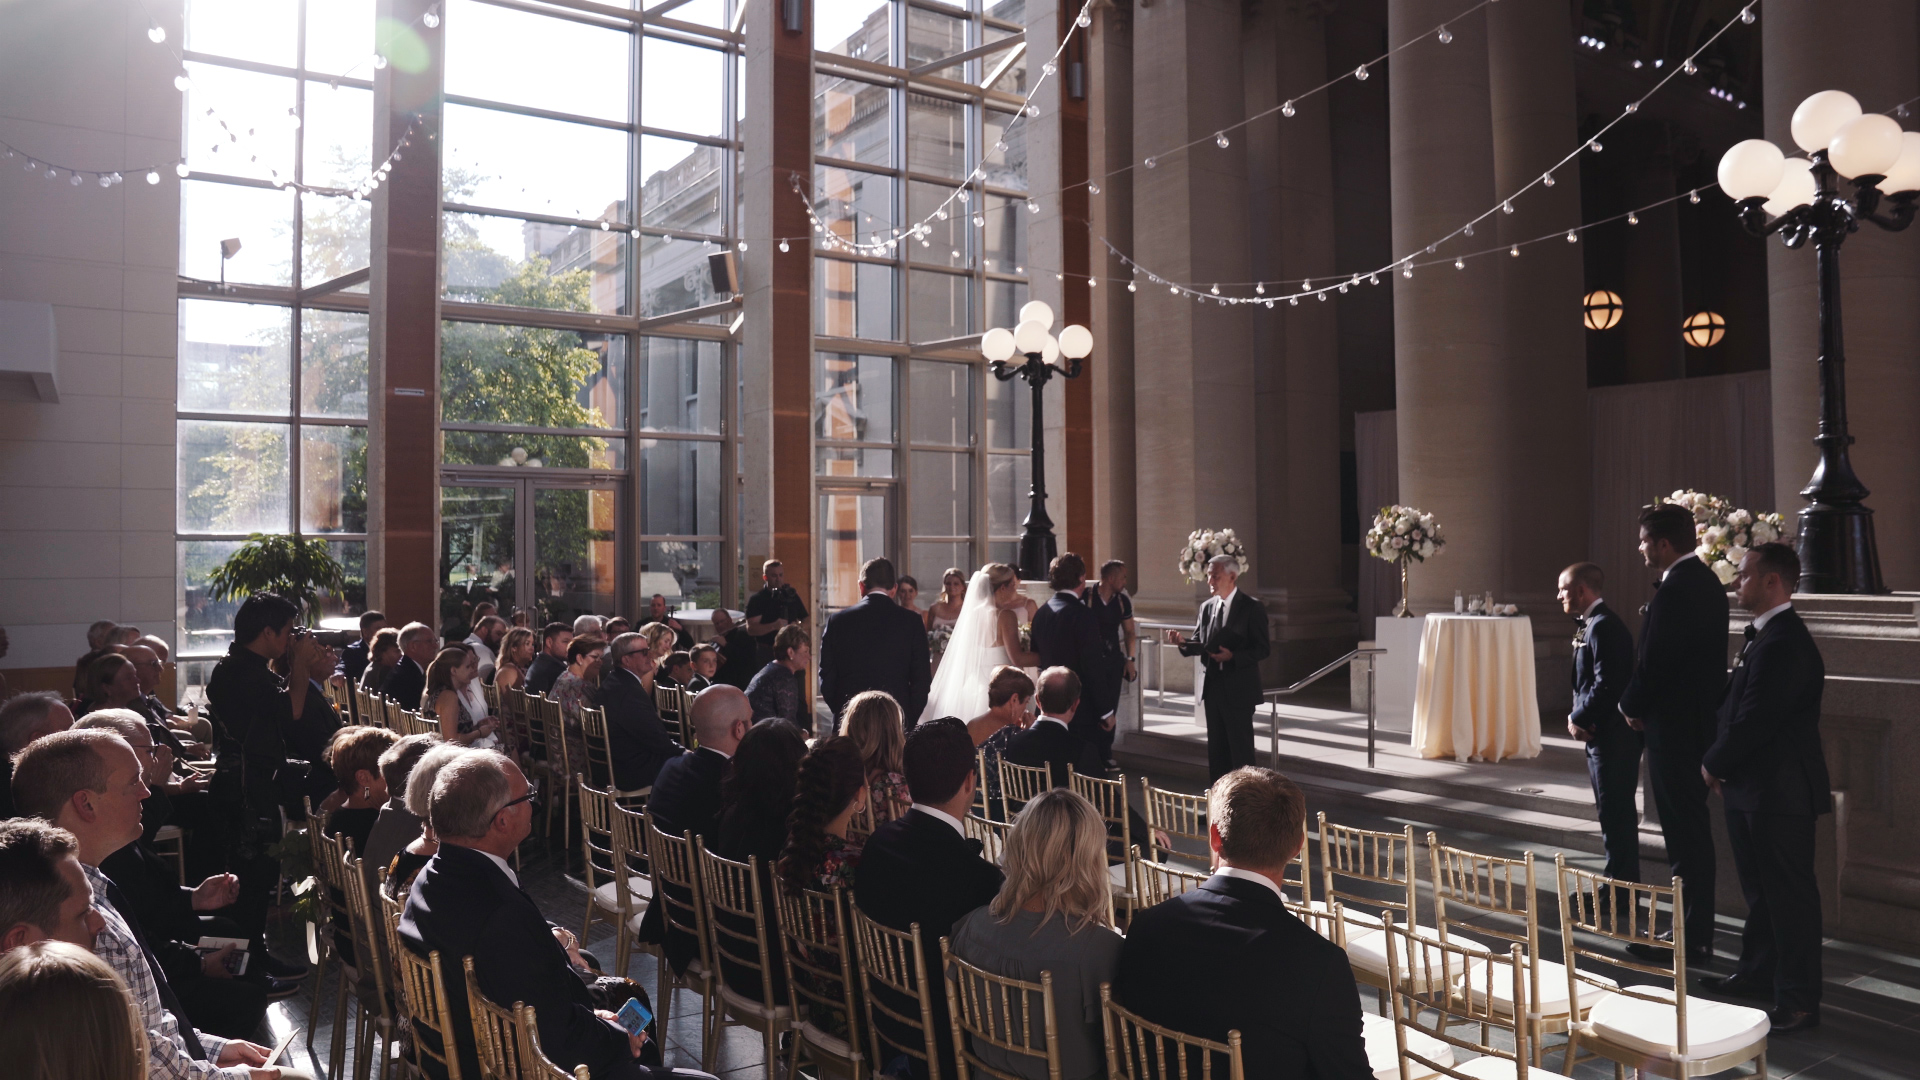 Missouri History Museum Wedding Video - Ceremony